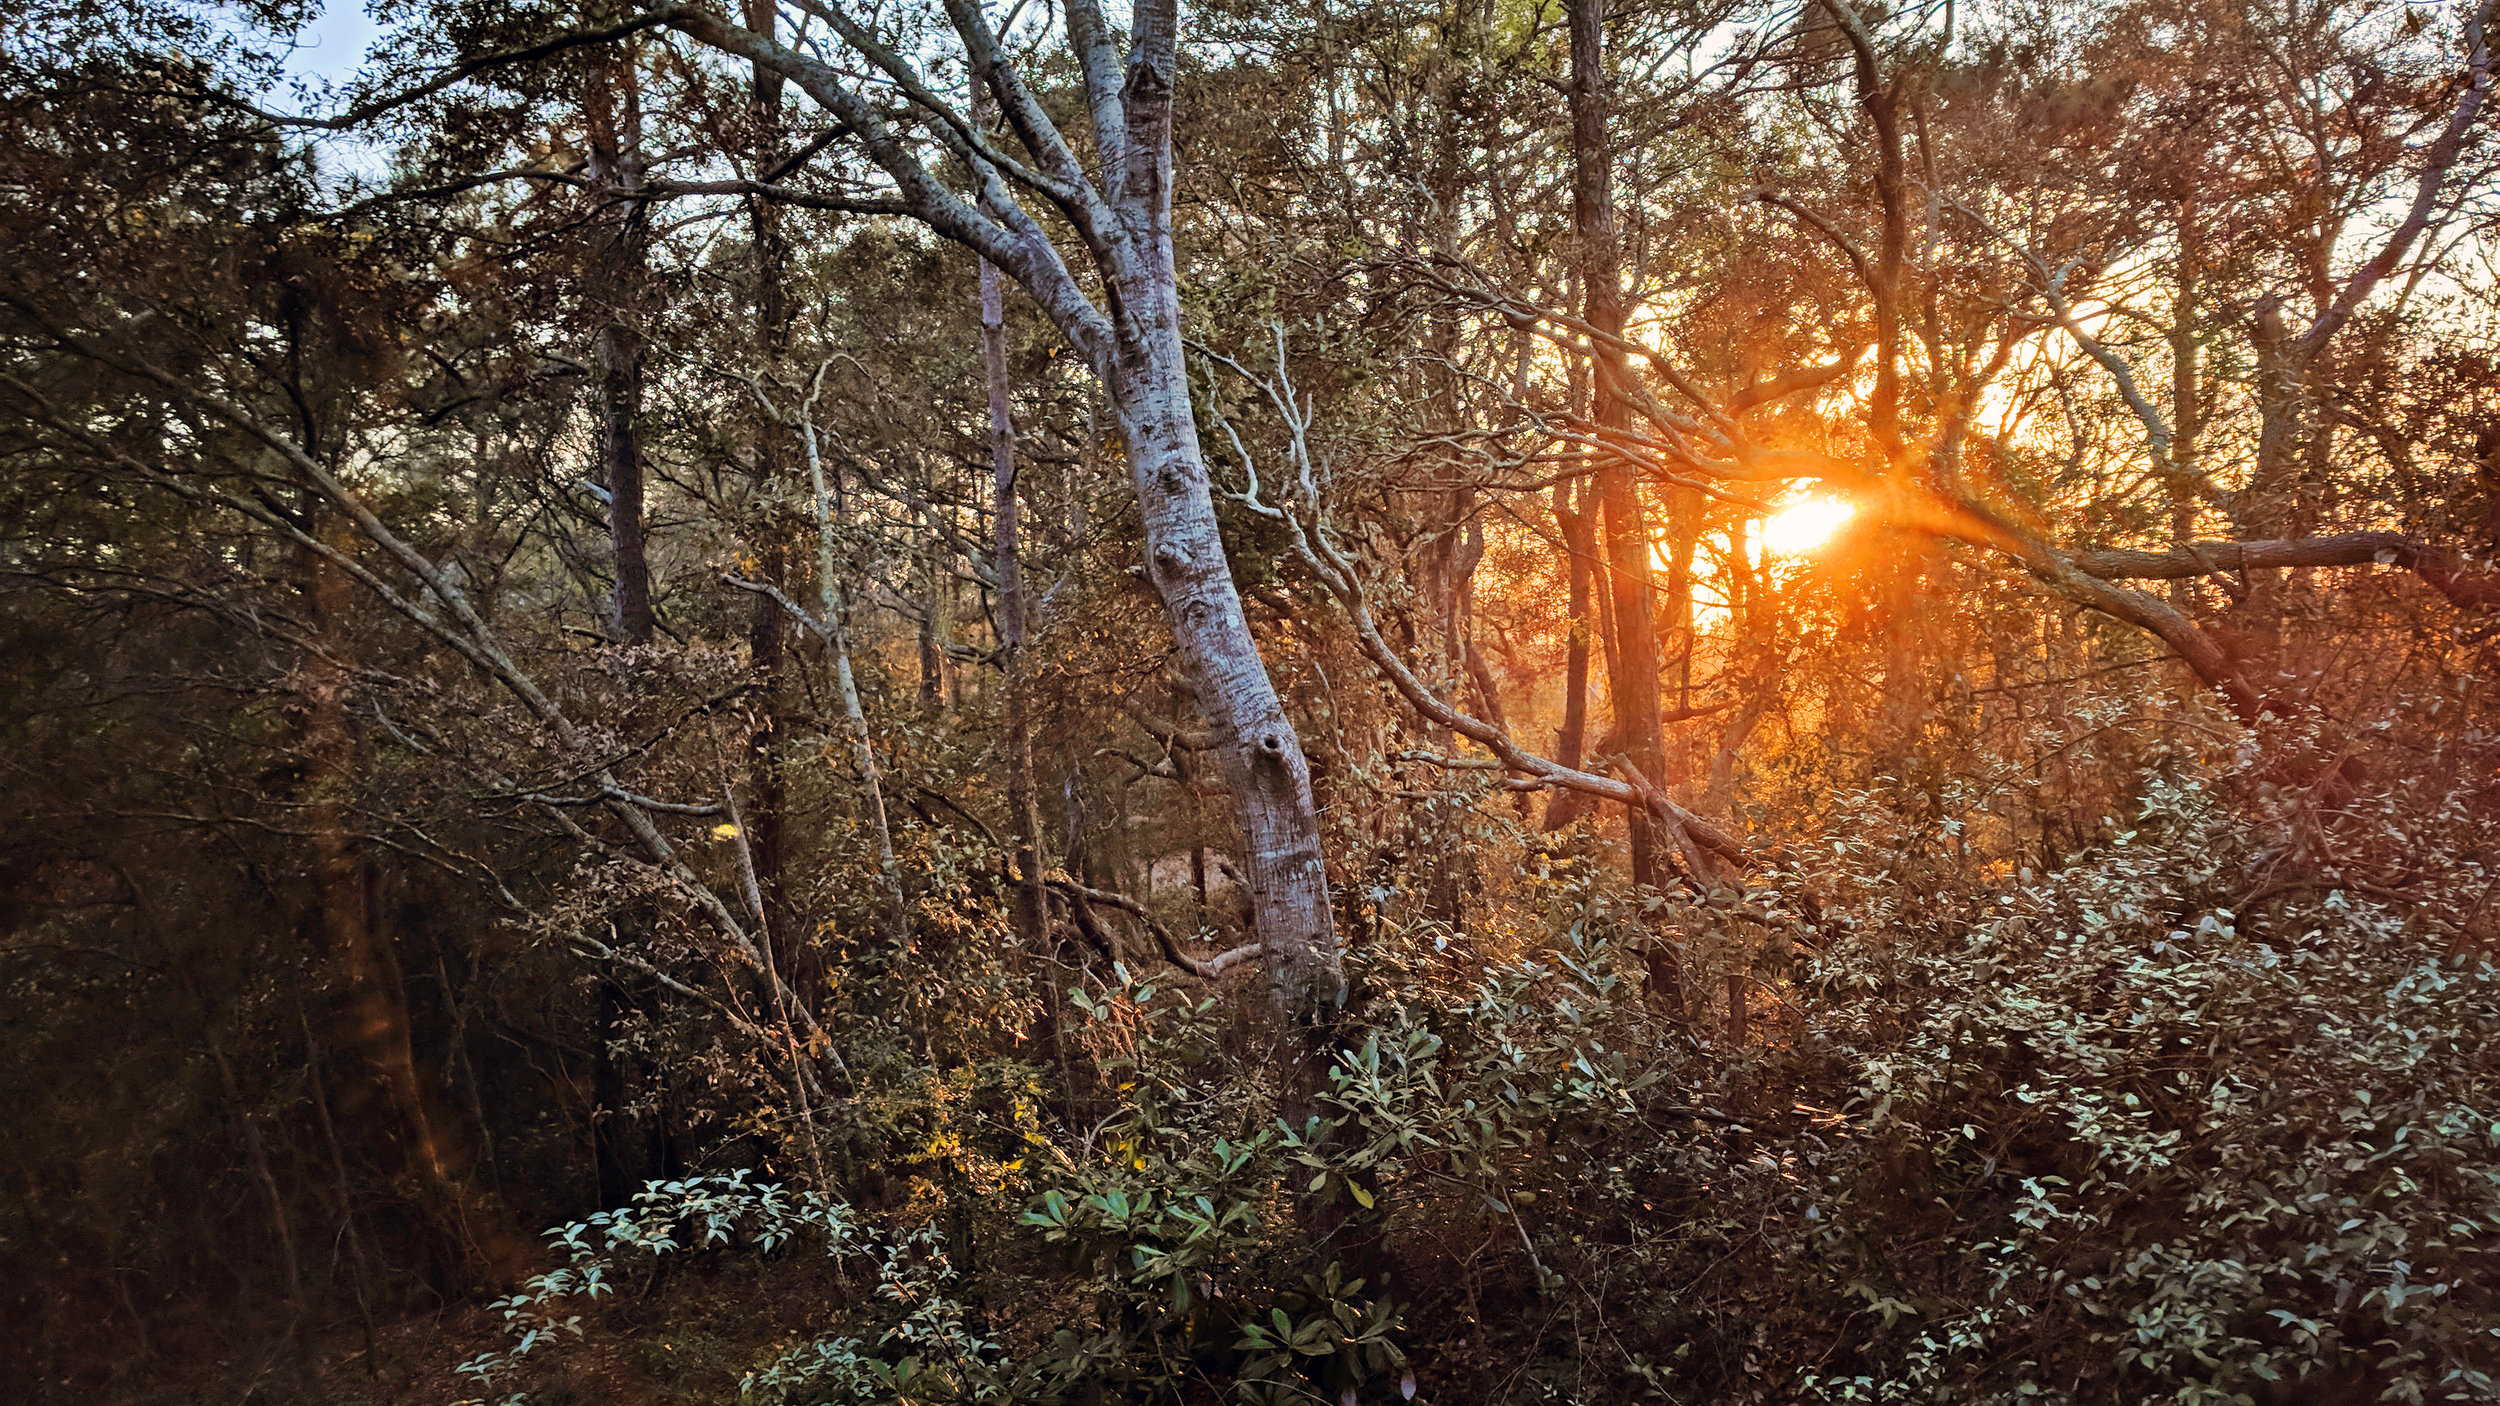 Ingram Dunes hosts a maritime forest full of diverse plant live right in the middle of North Myrtle Beach.